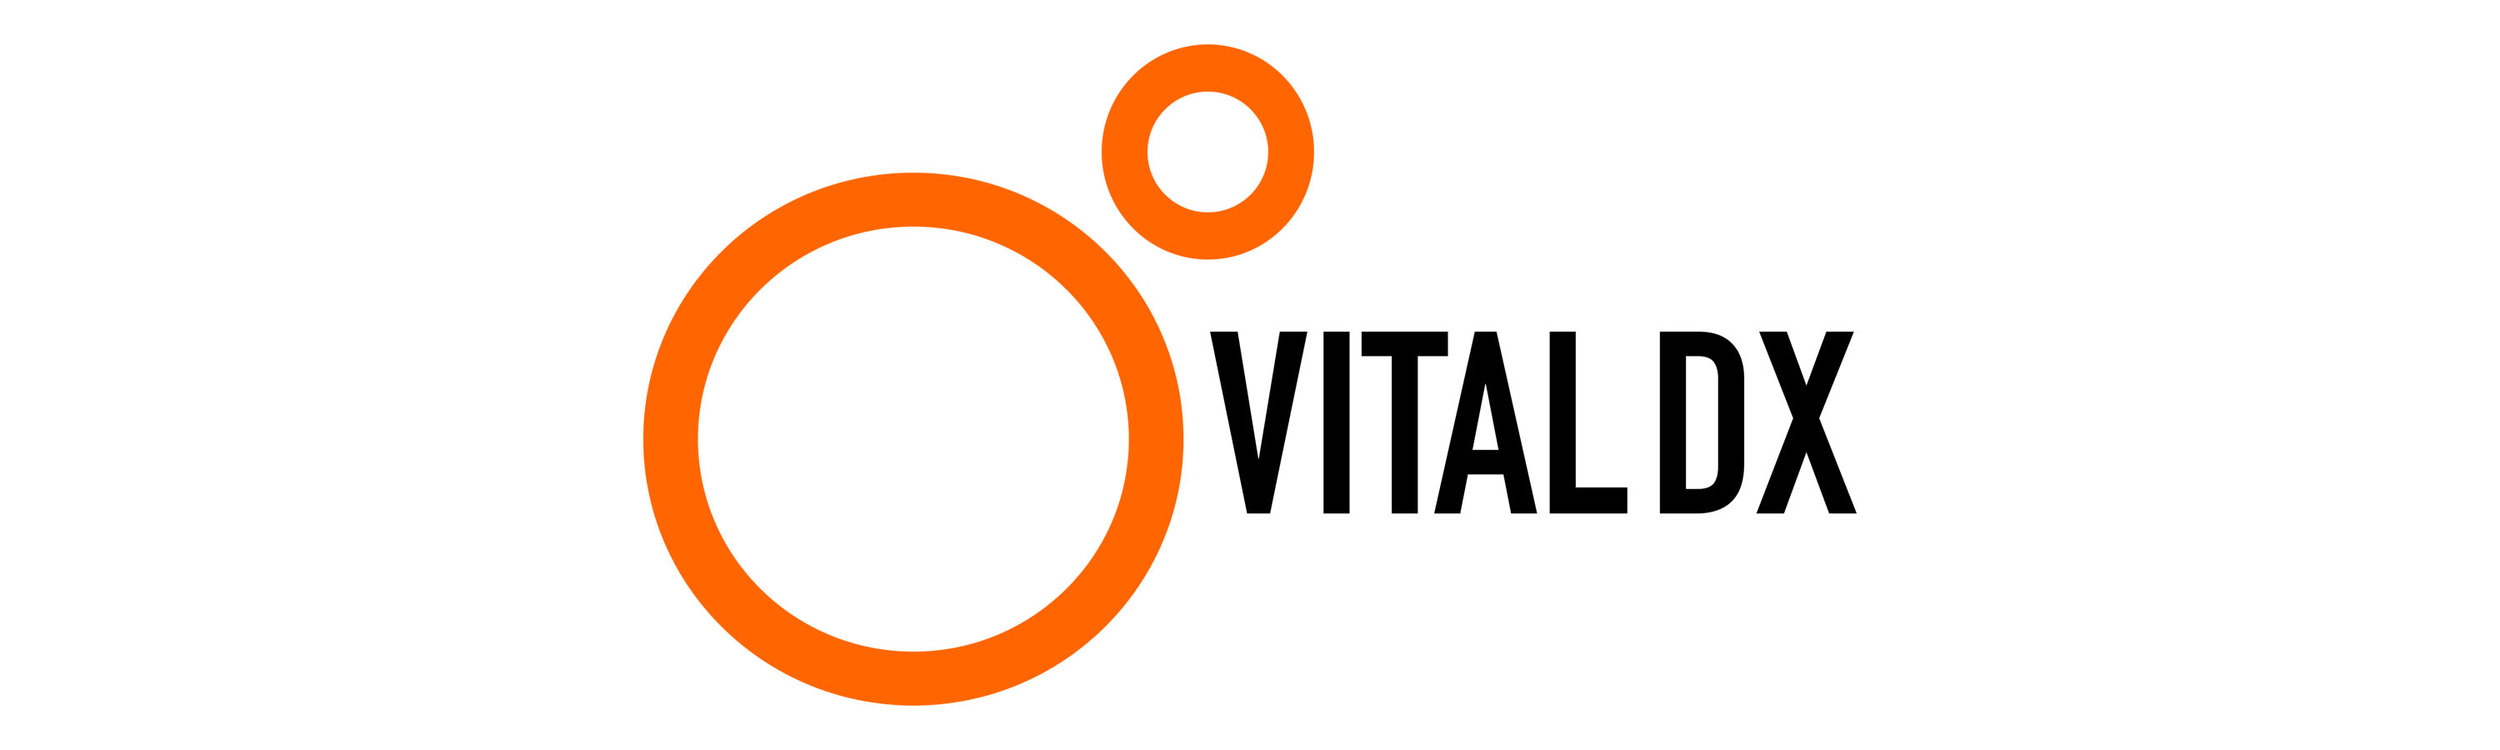 Dan Brown - Director @ Vital DXFull Branding and Business NamingBranding, Messaging, Marketing, Design and creative intelligence brings the Brand to life: Matt has a superlative mastery of all these tools. He is the epitome of creative genius, bundled with marketing flair and design prowess.I secured Explosive Works services for the rename and relaunch of our VitalDX portfolio of digital products. It was an absolute pleasure to work with Matt during the creative process. The engagement he brings to the table throughout the entire process is extremely insightful, and I highly endorse them and I look forward to our future collaborations